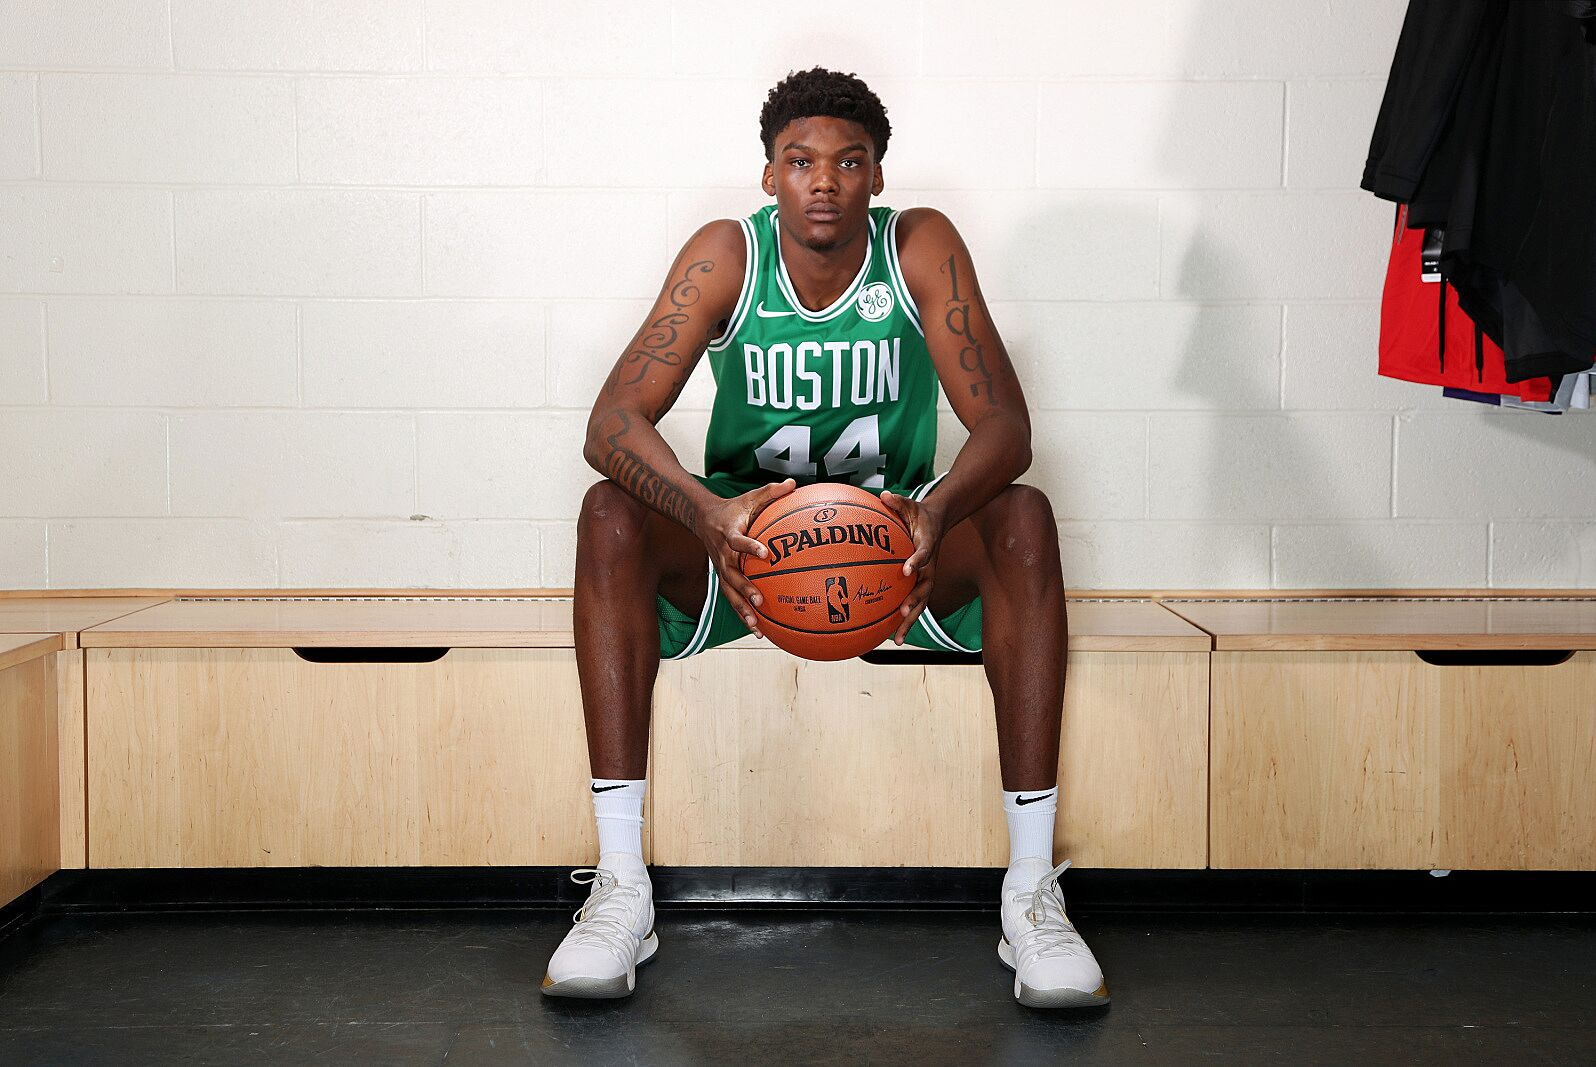 a17afa7c8 Robert Williams III at the NBA Rookie Photo Shoot (Photo by Nathaniel S.  Butler NBAE via Getty Images)